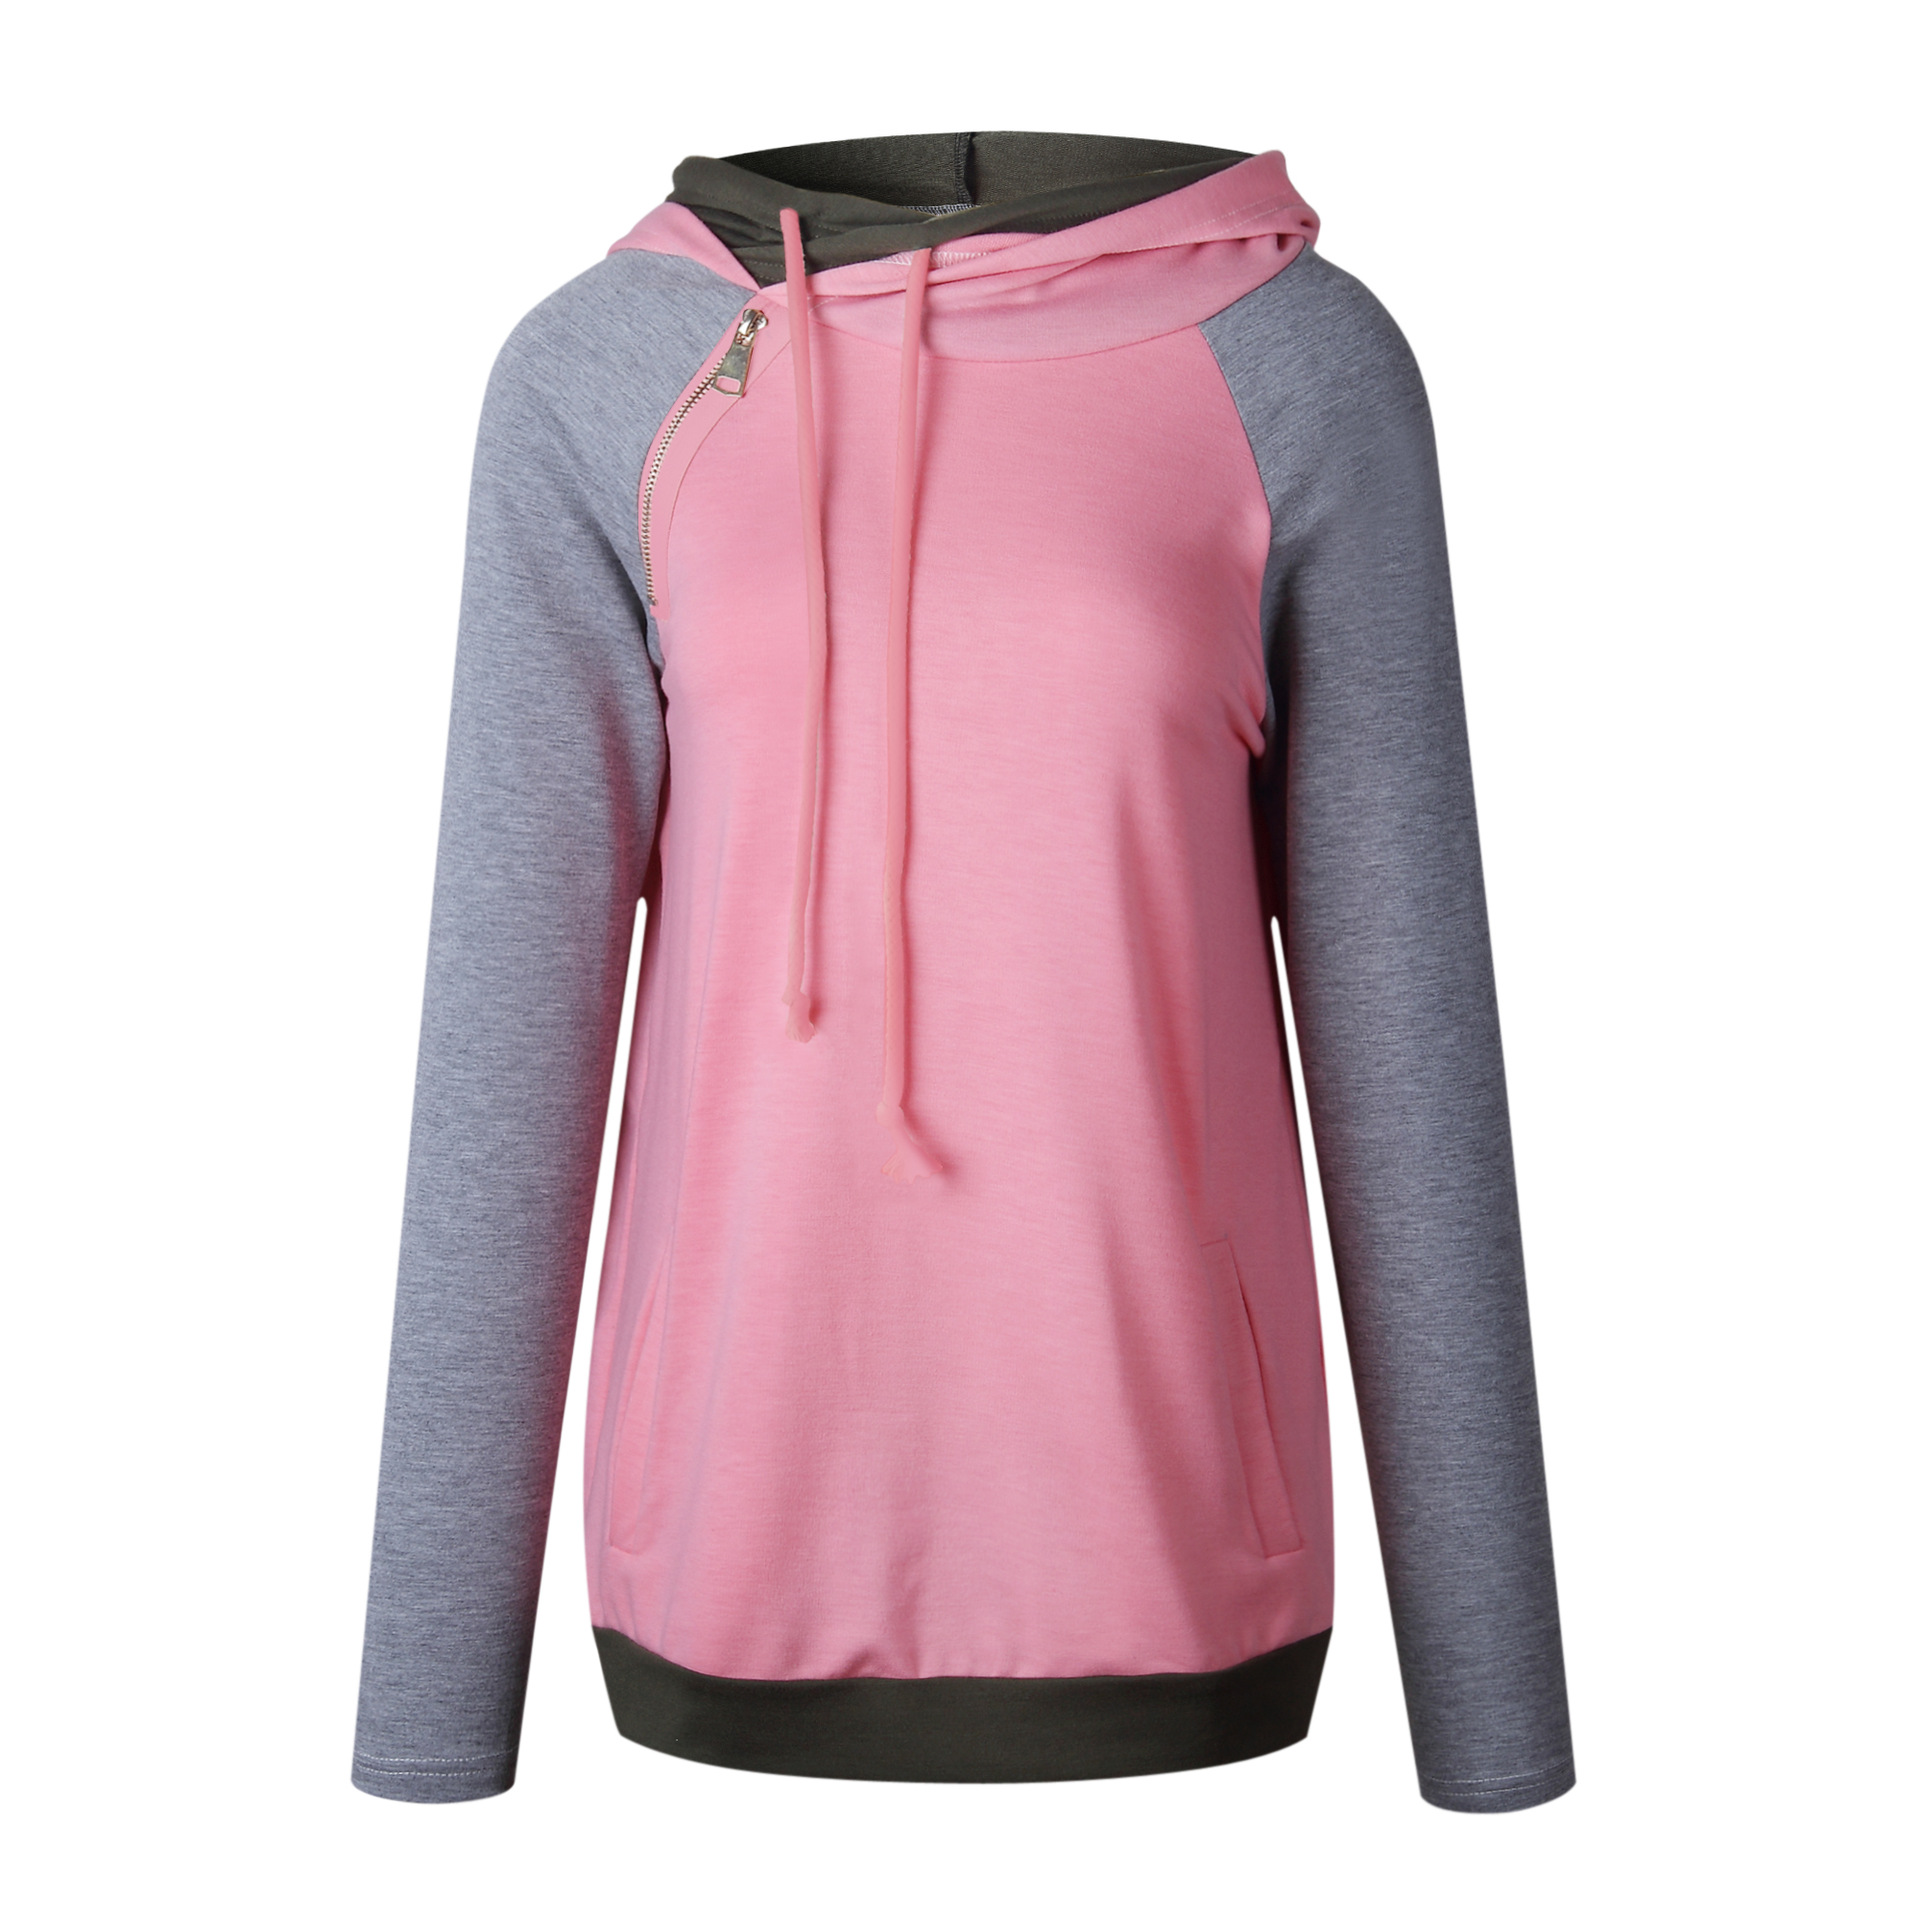 Women's Patchwork Striped Pullover Long Sleeve Hoodie, Tops With Pockets, Hooded Sweatshirt 21